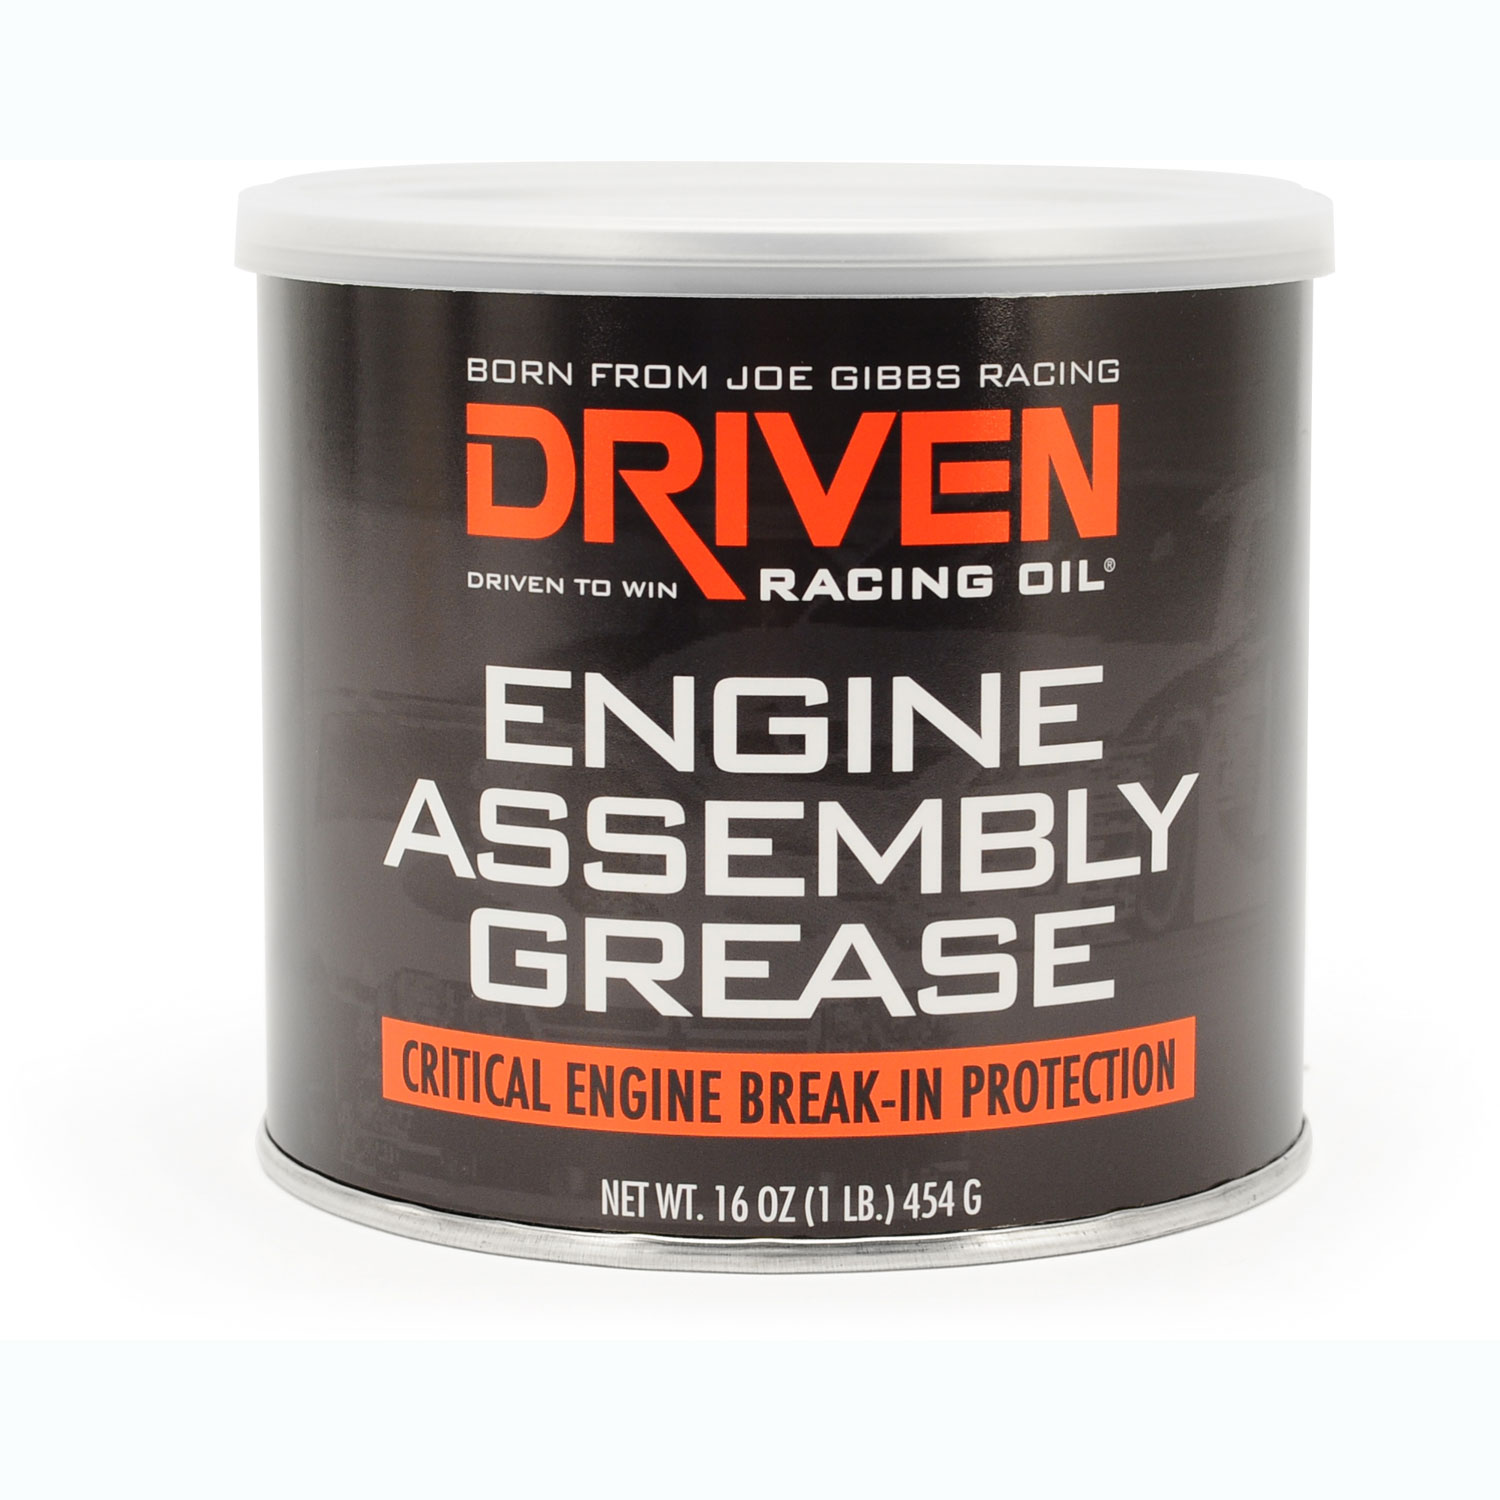 Driven Racing Oil Assembly Grease 1 lb. Tub